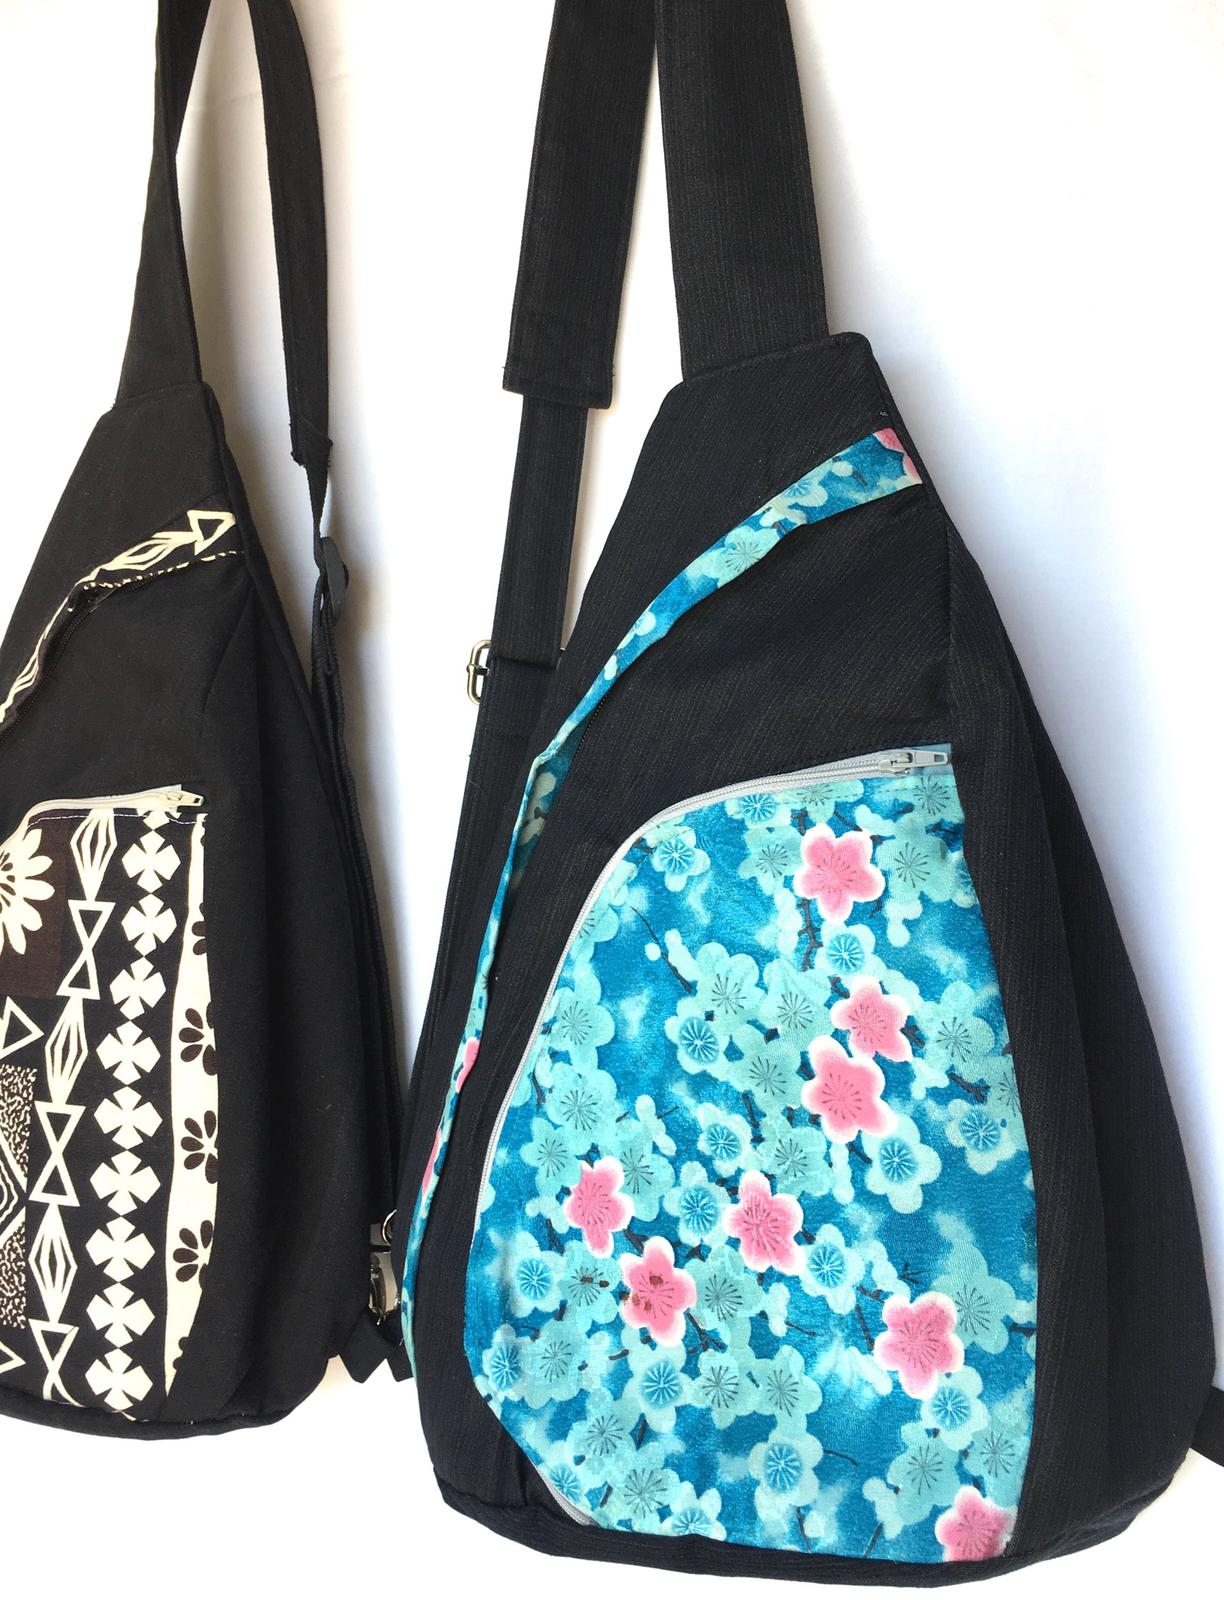 Teardrop back pack - upcycled textiles inc. silk kimono